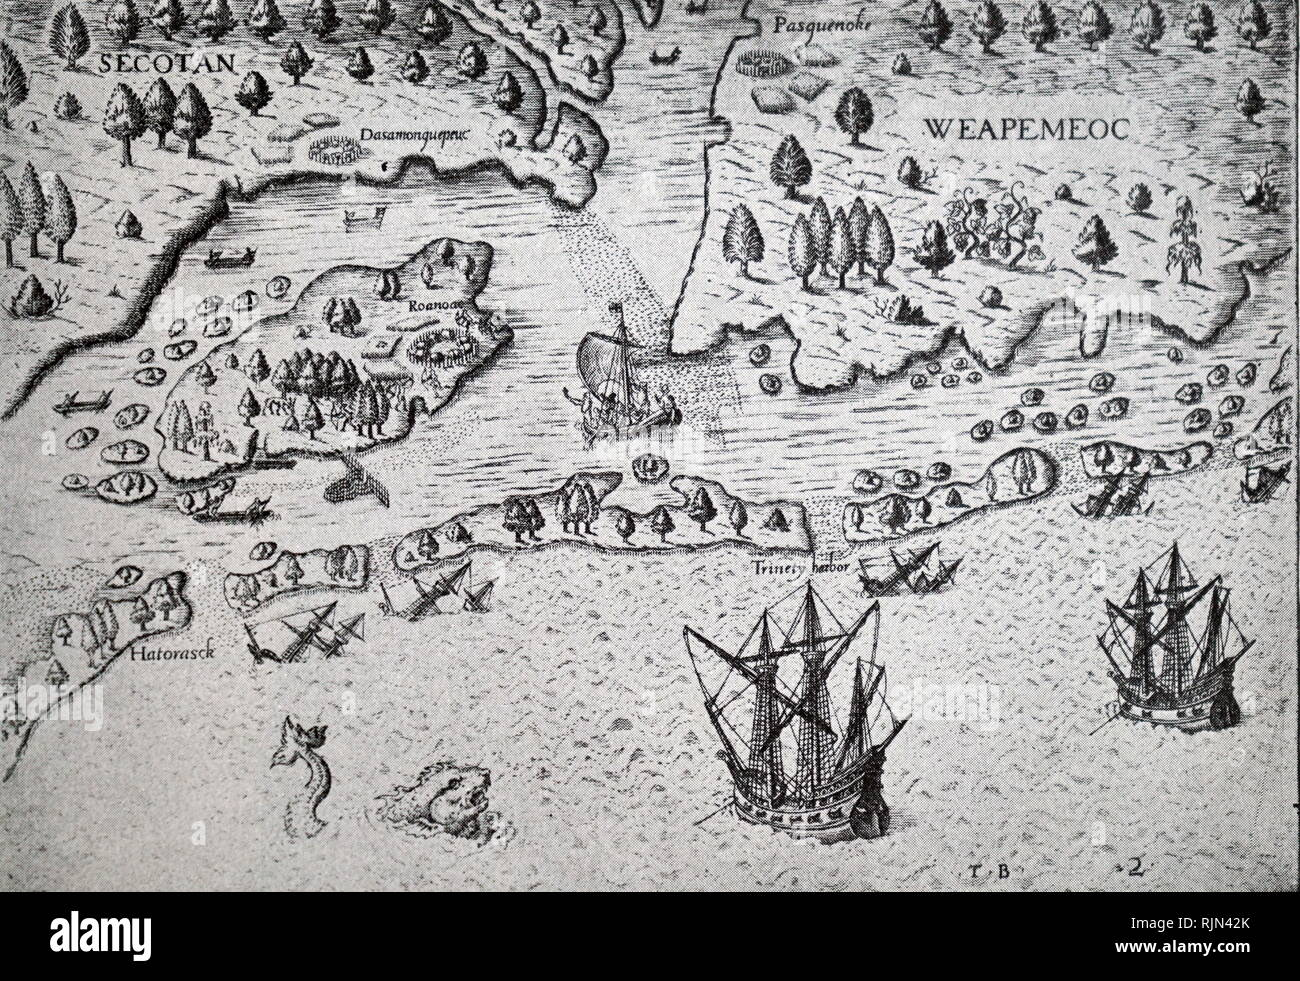 Illustration showing Roanoke Island, centre left, explored 1584 by Amadas and Barlowe, sent by Raleigh. Unsuccessful colonising attempts 1585 and 1587. After drawing of Raleigh's first colony, 1585, from De Bry Grand Voyages, Frankfort, 1590 - Stock Image